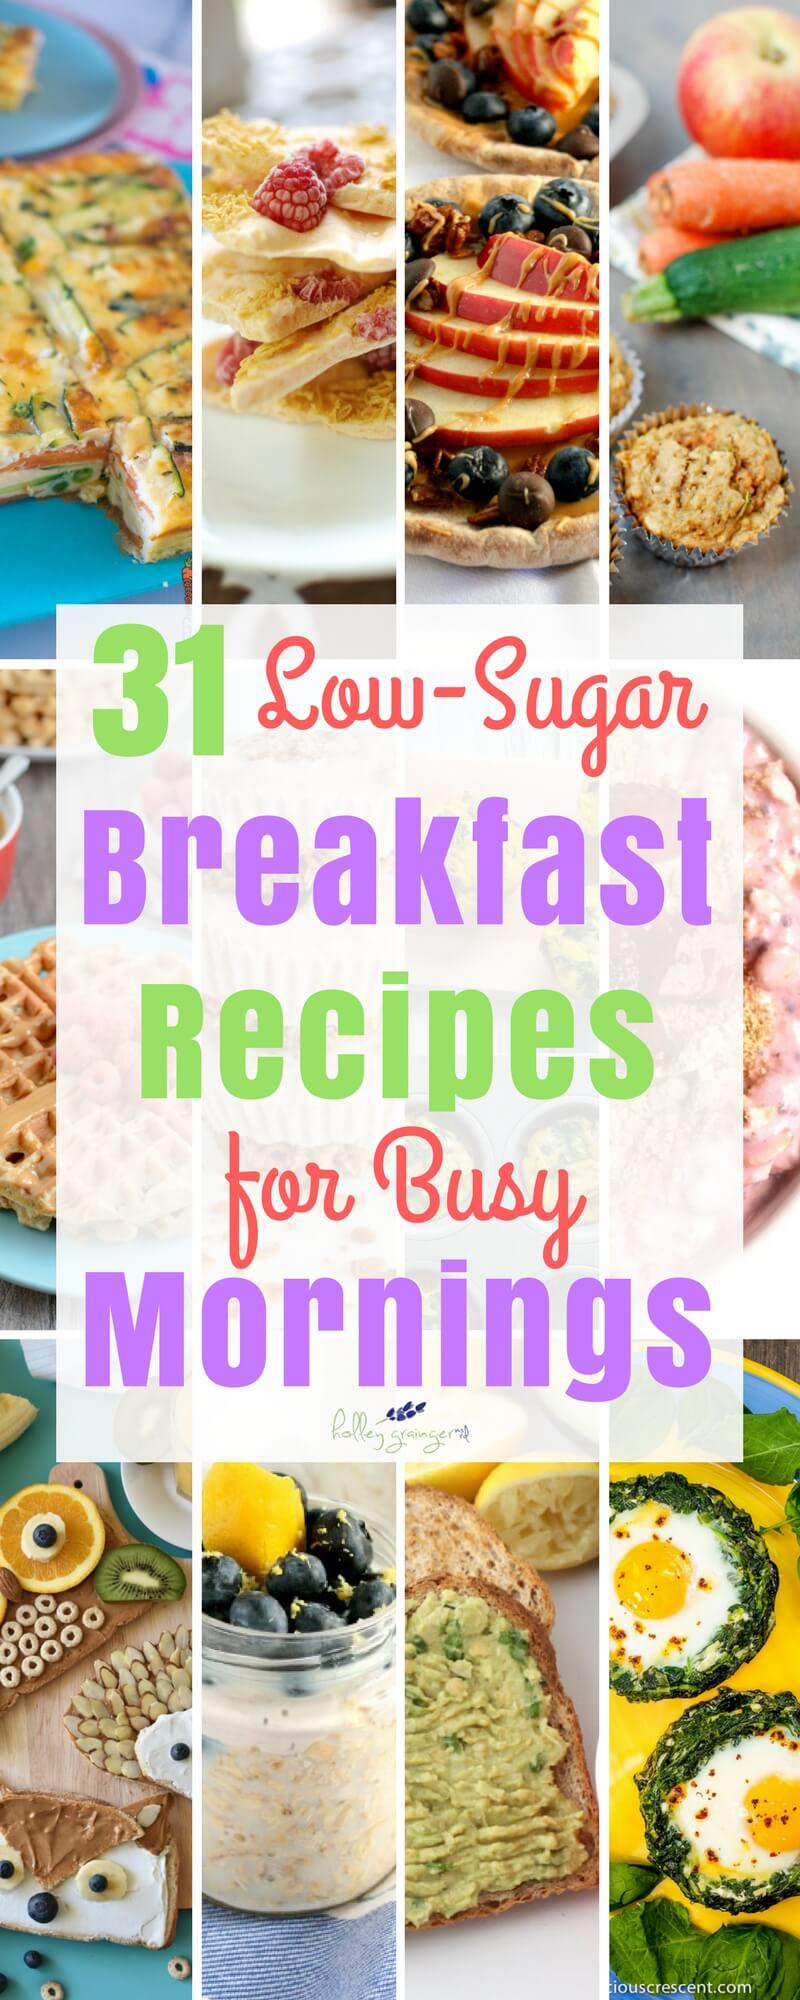 Get an ENTIRE MONTH of family-favorite, low-sugar breakfast recipes for busy mornings that will leave your family feeling full and satisfied.